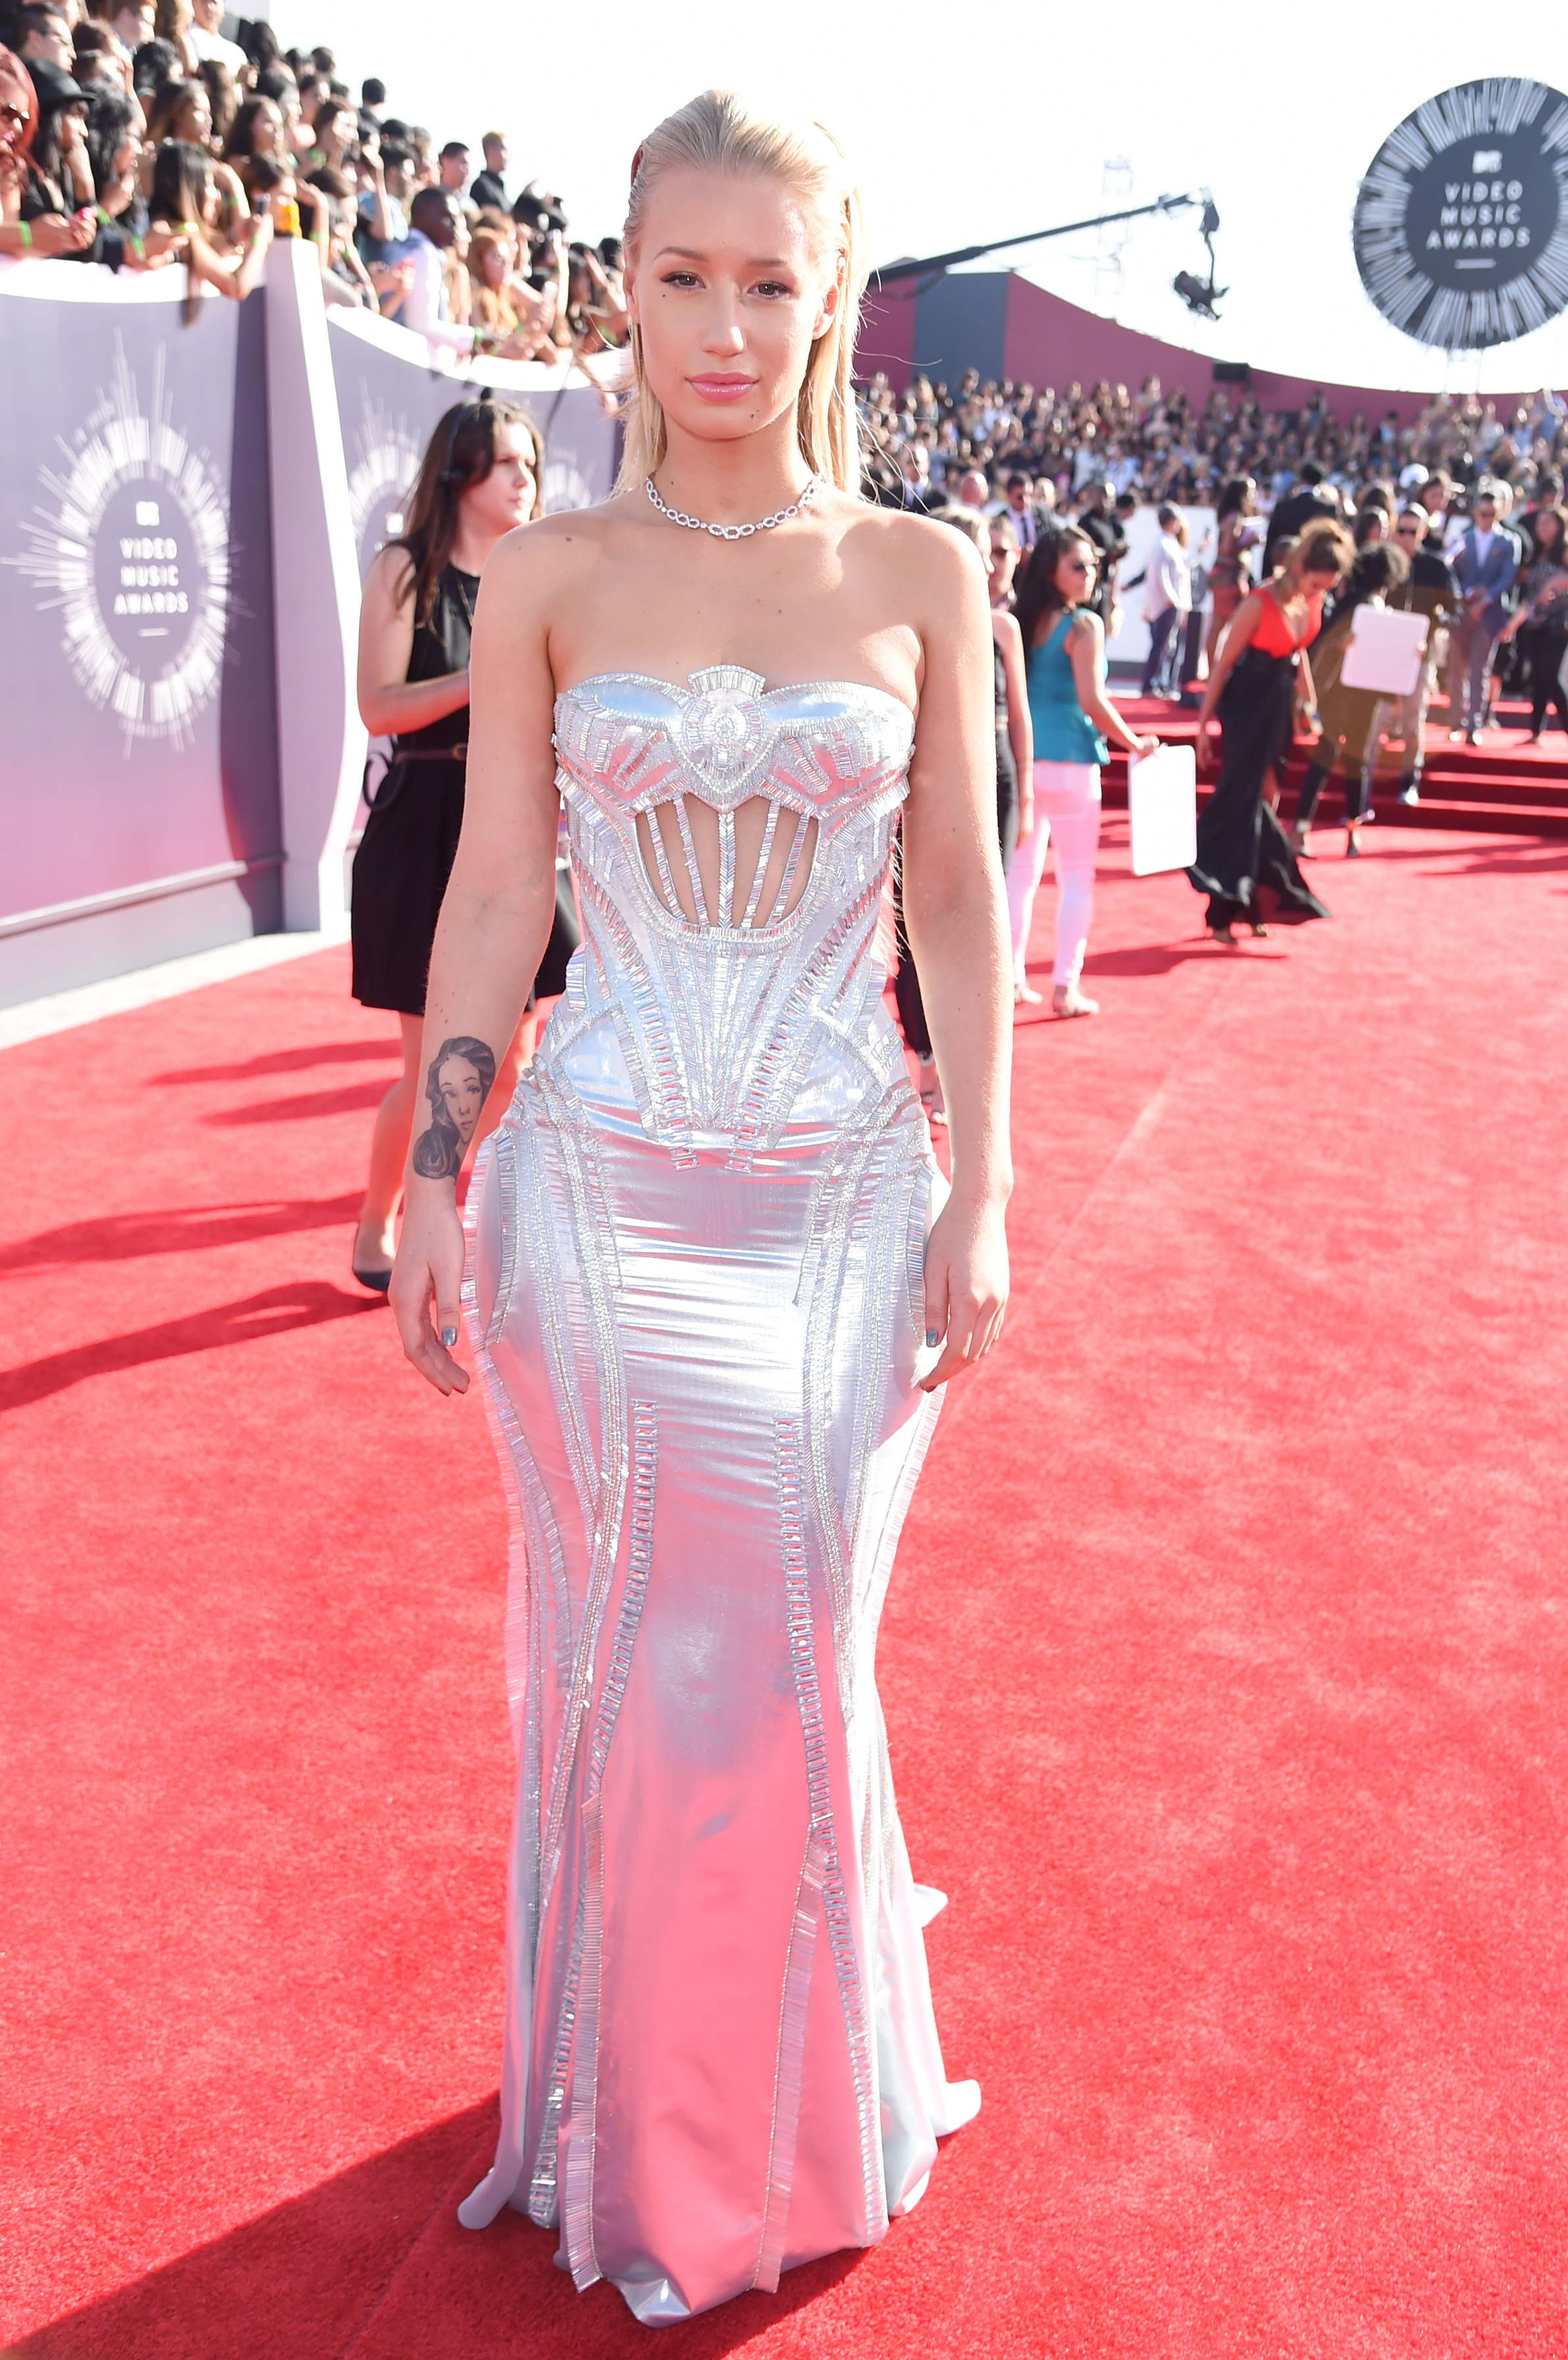 Iggy Azalea attends the 2014 MTV Video Music Awards at The Forum on August 24, 2014 in Inglewood, California.